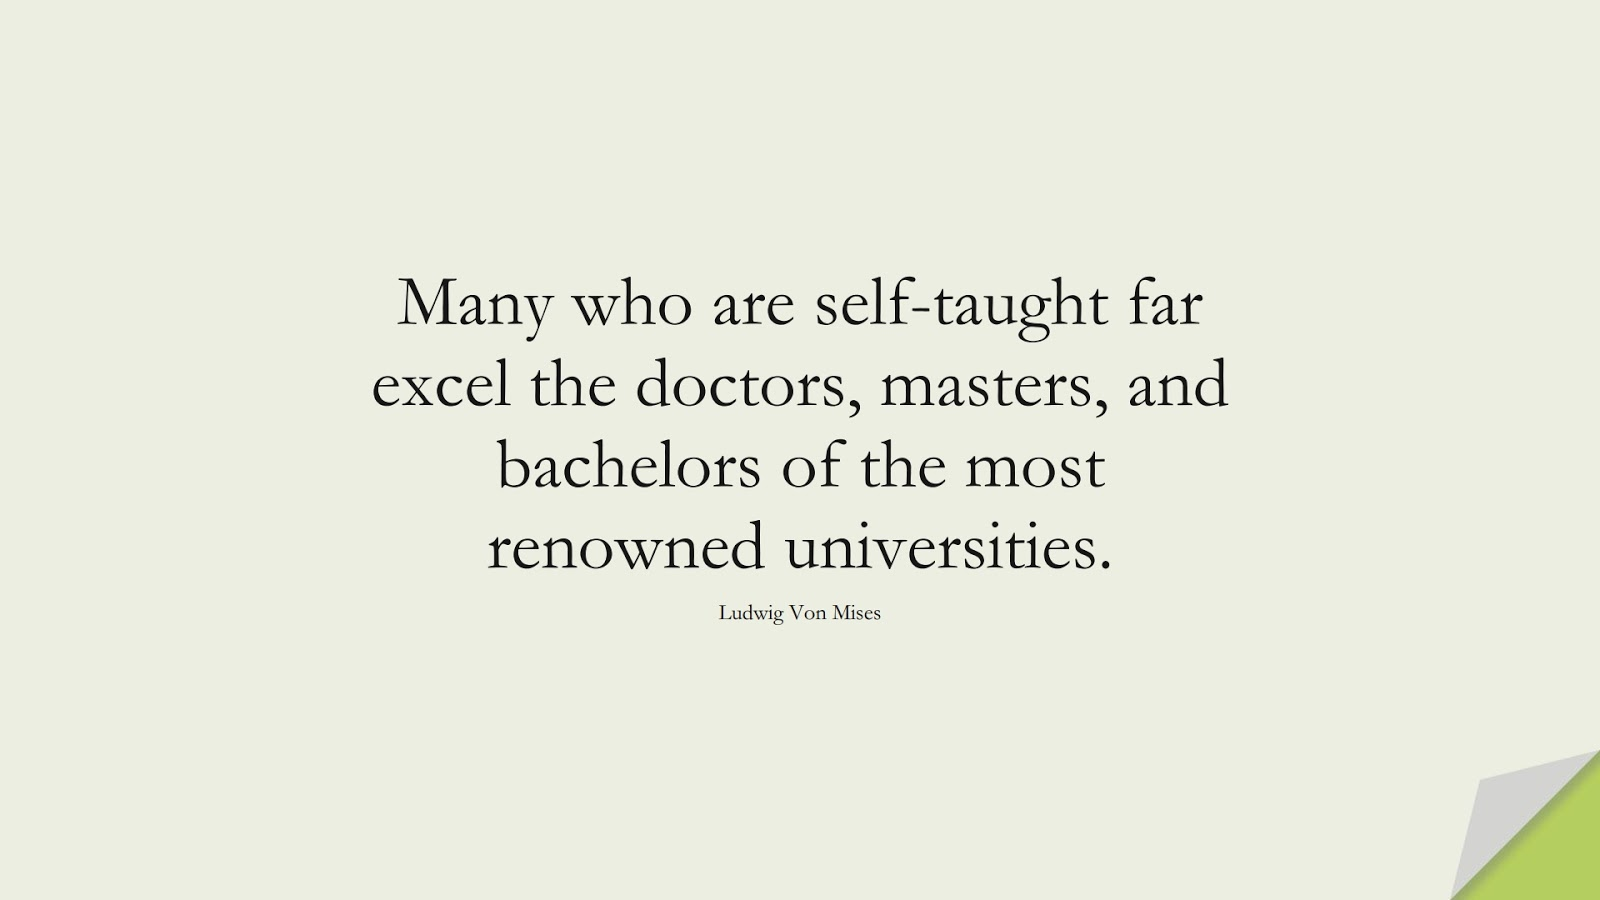 Many who are self-taught far excel the doctors, masters, and bachelors of the most renowned universities. (Ludwig Von Mises);  #HardWorkQuotes